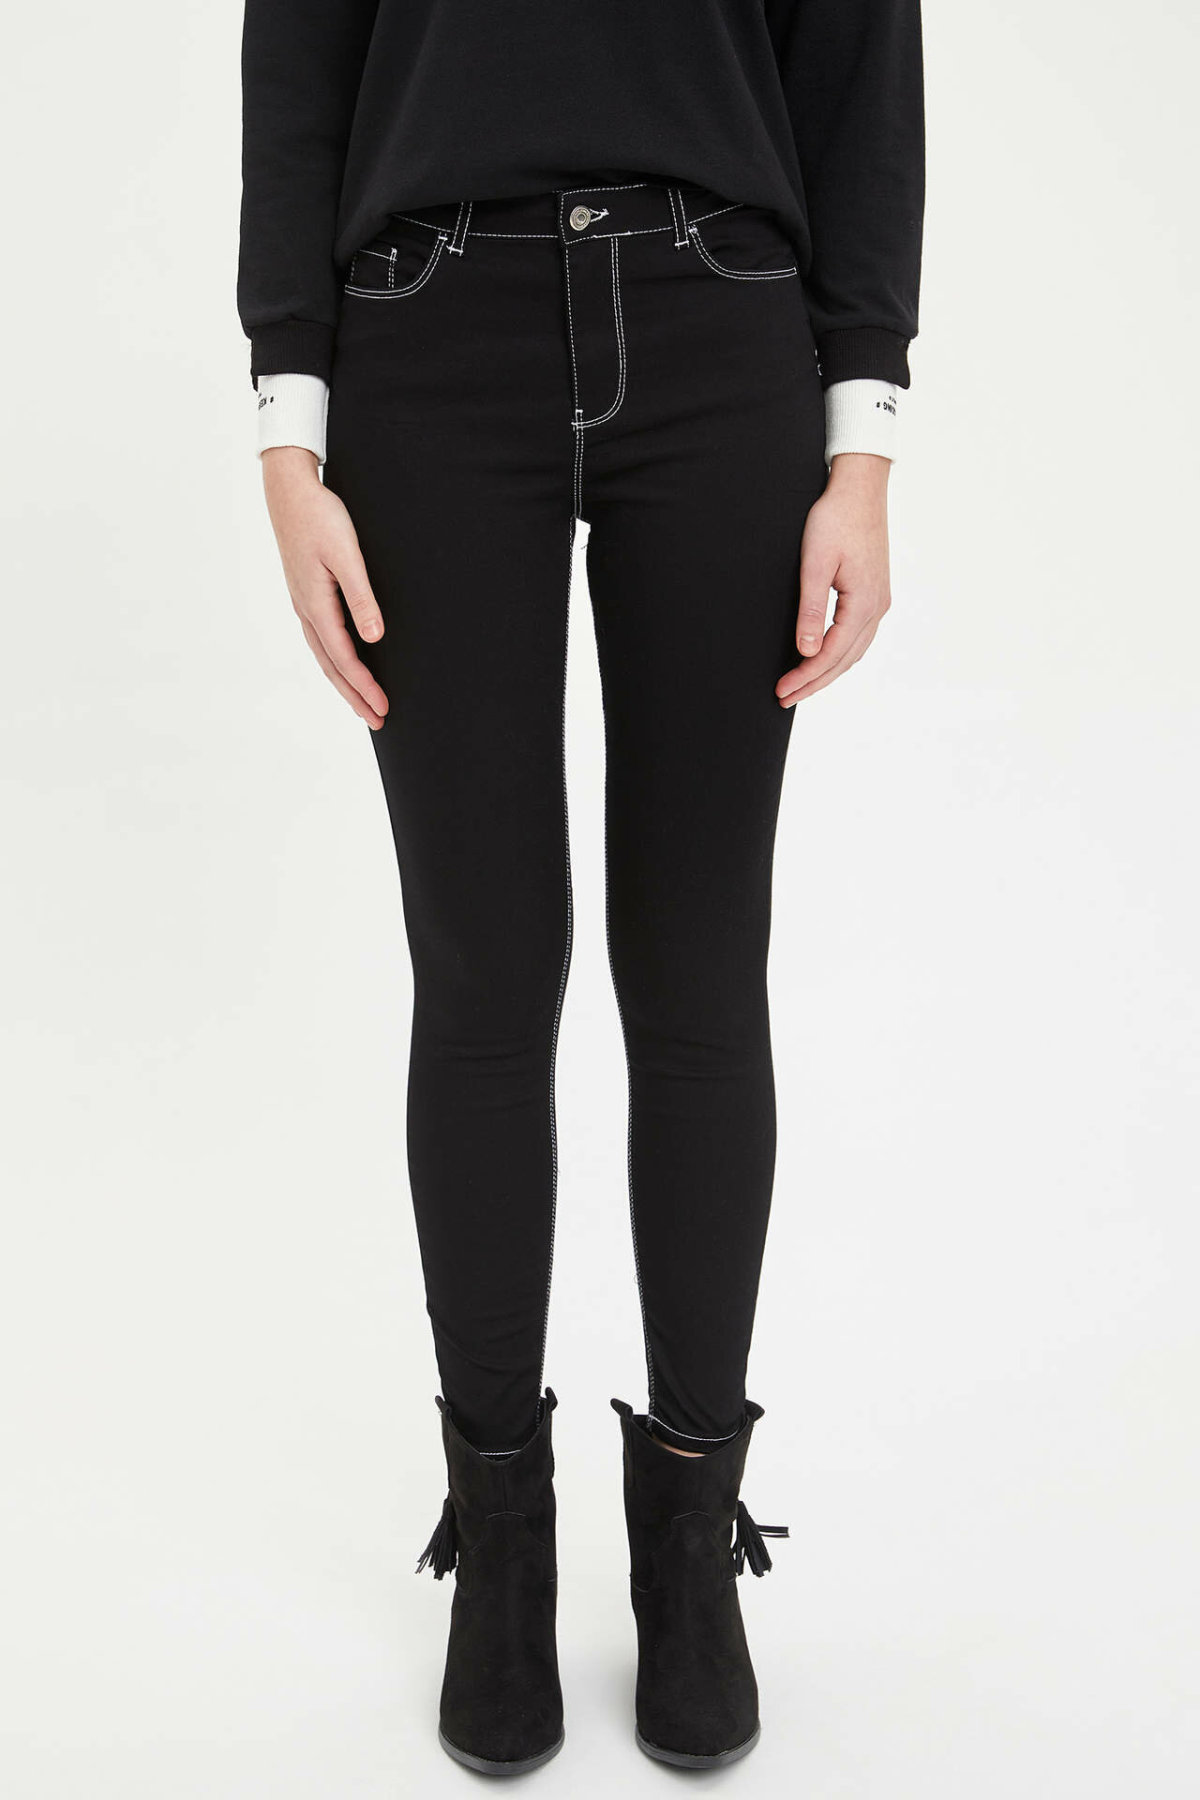 DeFacto Woman Winter Skinny Black Pants Women Casual Mid-waist Slim Long Pants Female Bottoms Trousers-K6282AZ18WN